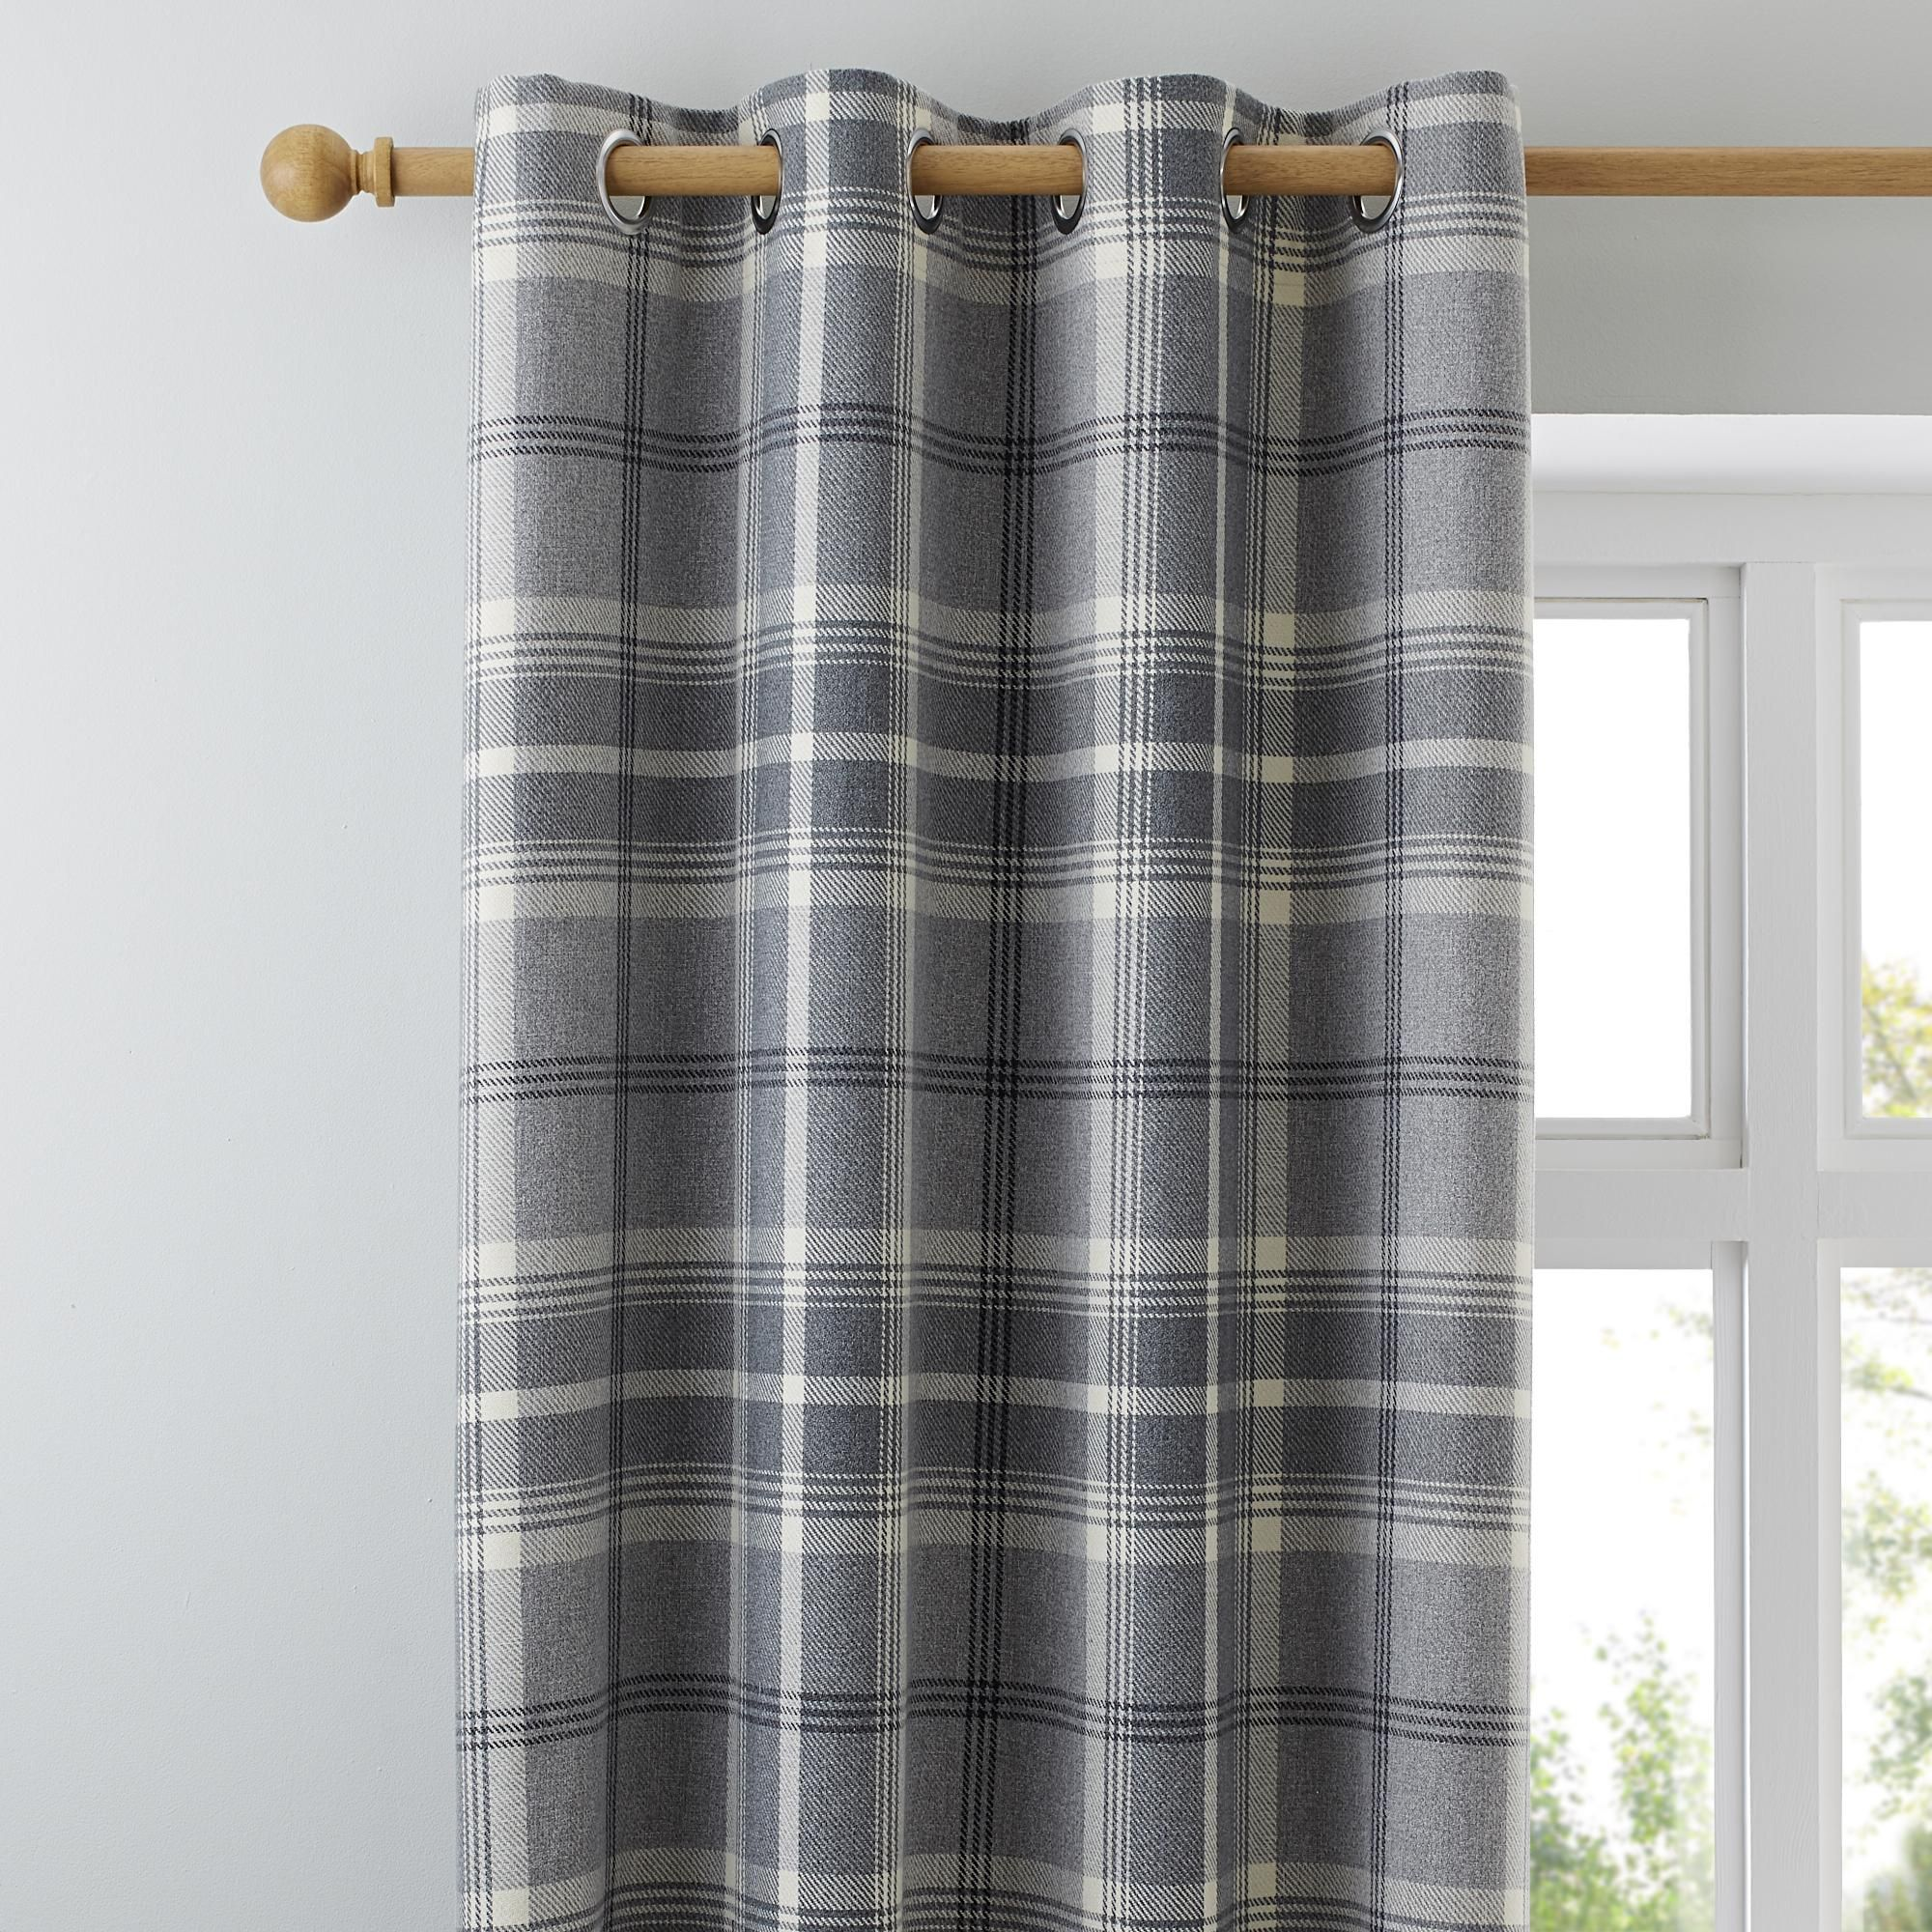 Highland Check Dove Grey Eyelet Curtains In 2020 Grey Eyelet Curtains Curtains Check Curtains